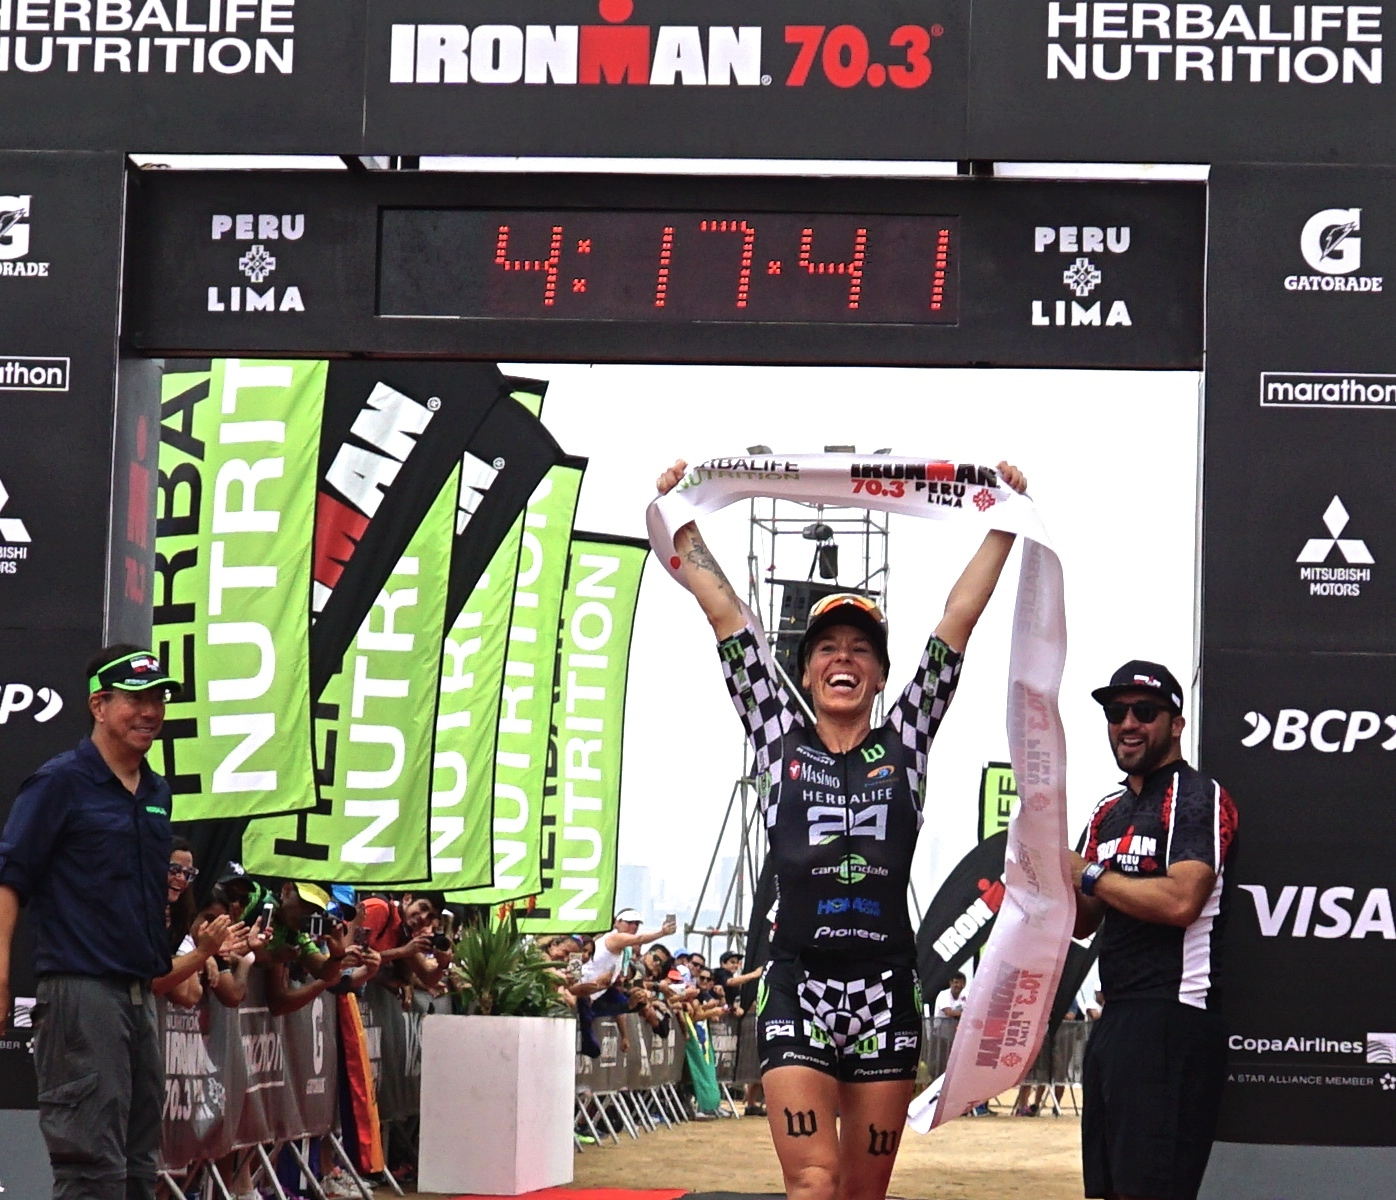 "Herbalife Nutrition Sponsored Triathlete Heather Jackson Wins IRONMAN 70.3 Peru and Donates Proceeds to the Peruvian People Affected by the Floods. Herbalife Nutrition sponsored triathlete Heather Jackson wins the IRONMAN 70.3 Peru and will donate all proceeds to help the people of Peru affected by the floods. ""The people of Peru inspired me during the race, and Herbalife Nutrition fueled me as I pushed through,"" said Jackson. ""I'm always so grateful for the opportunity to race and meanwhile, thousands of people have lost their homes. Peru, Herbalife Nutrition, and the entire Herbalife Nutrition community have given me so much in so many ways that it is the least I can do to give back to this wonderful country."" Jackson completed the race with a time of 4 hours, 12 minutes and 41 seconds. Her next race is the IRONMAN in Chattanooga, TN, on May 21. (Photo: Business Wire)"